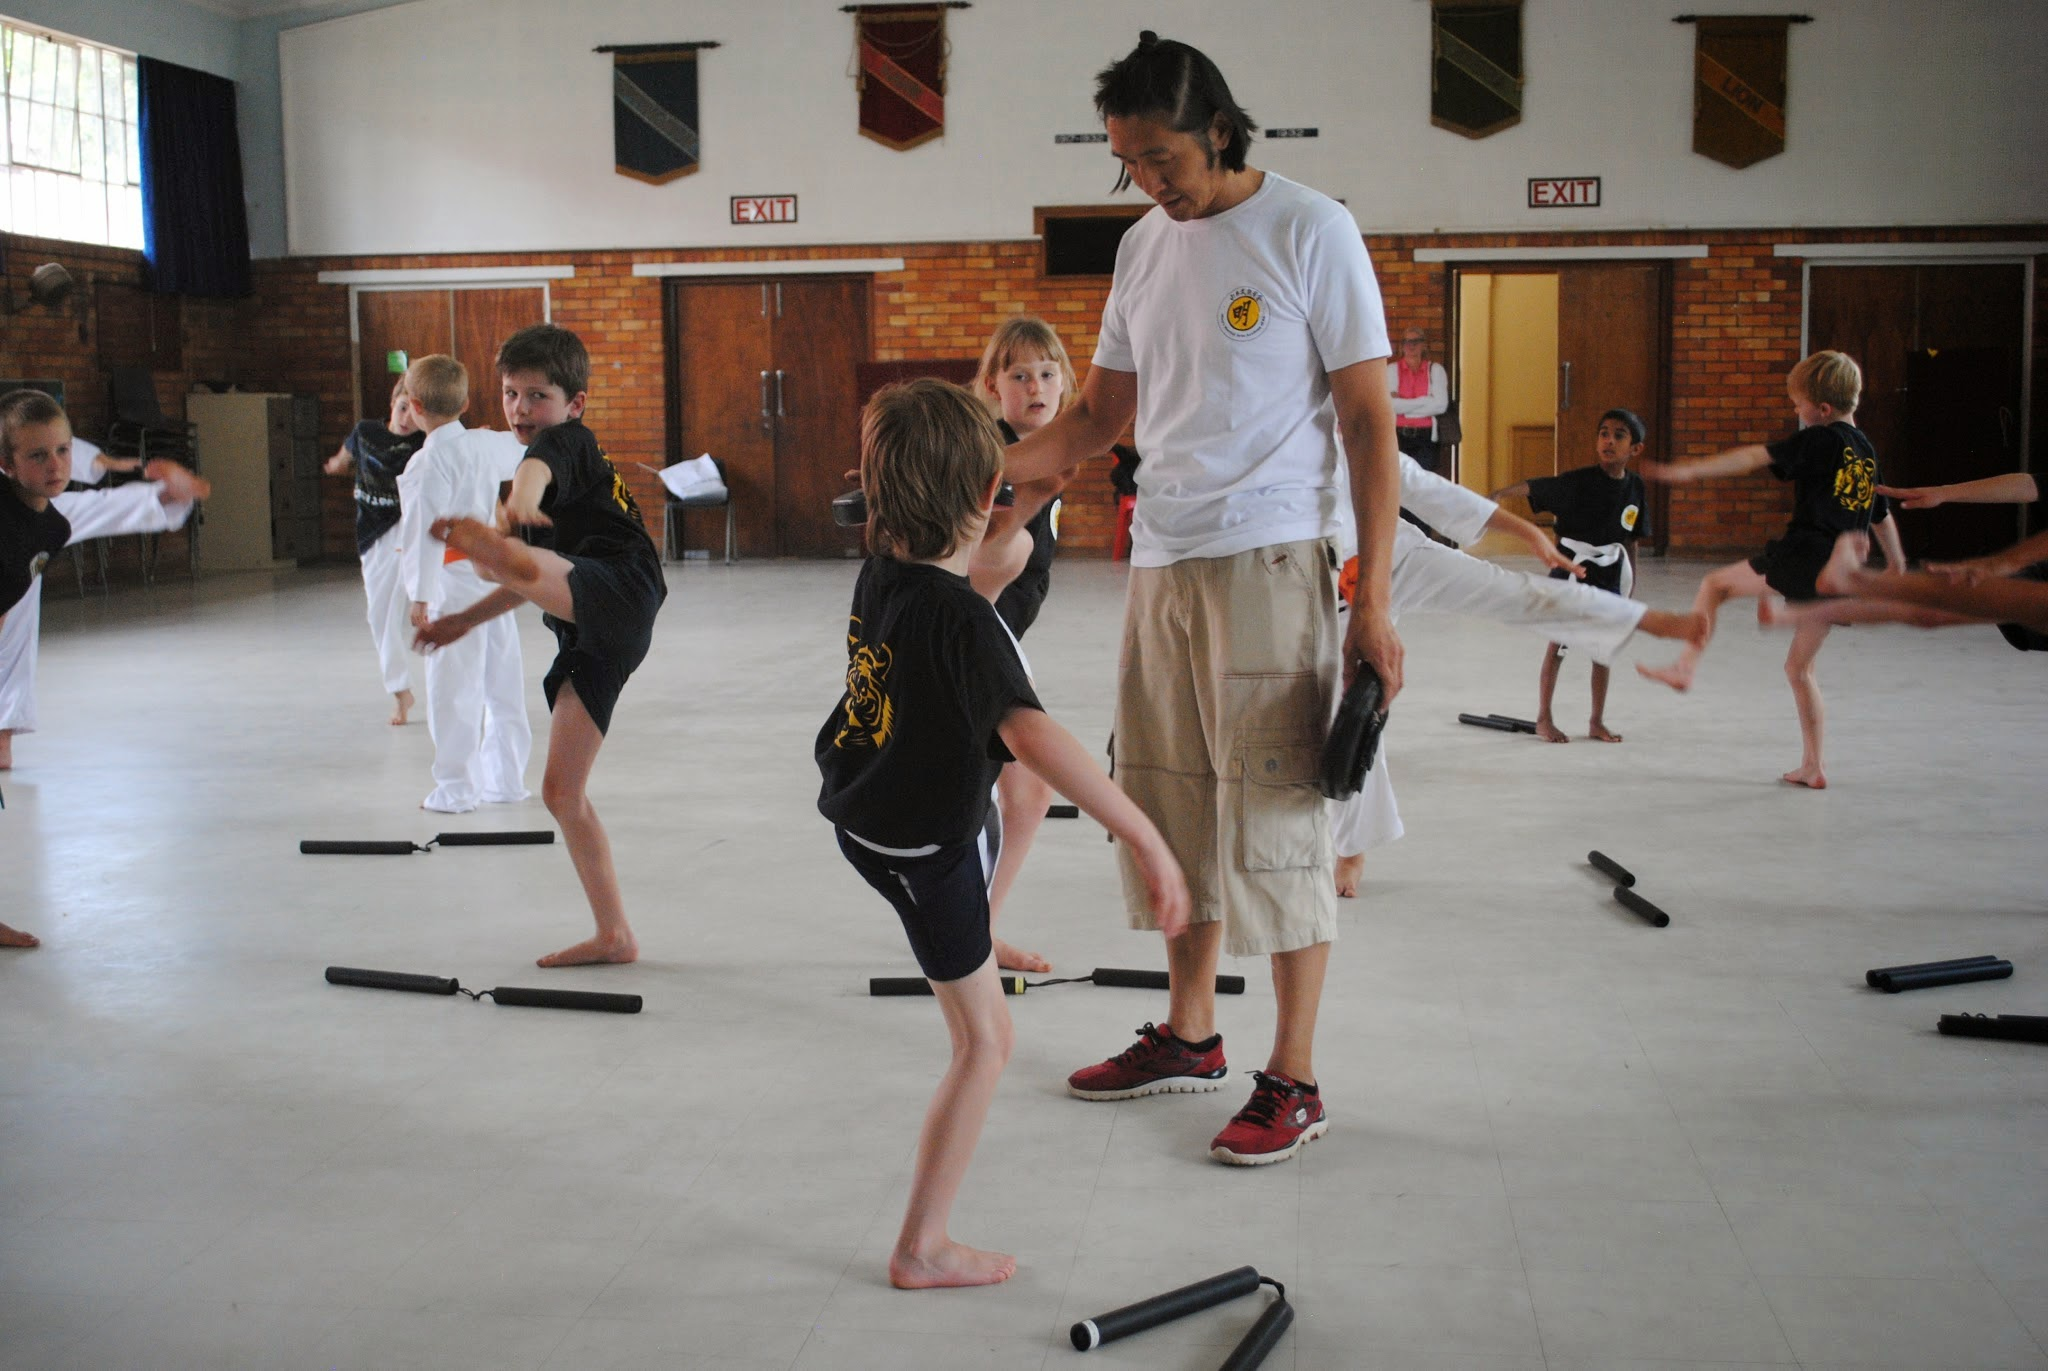 Children with ADHD benefit from Karate Classes